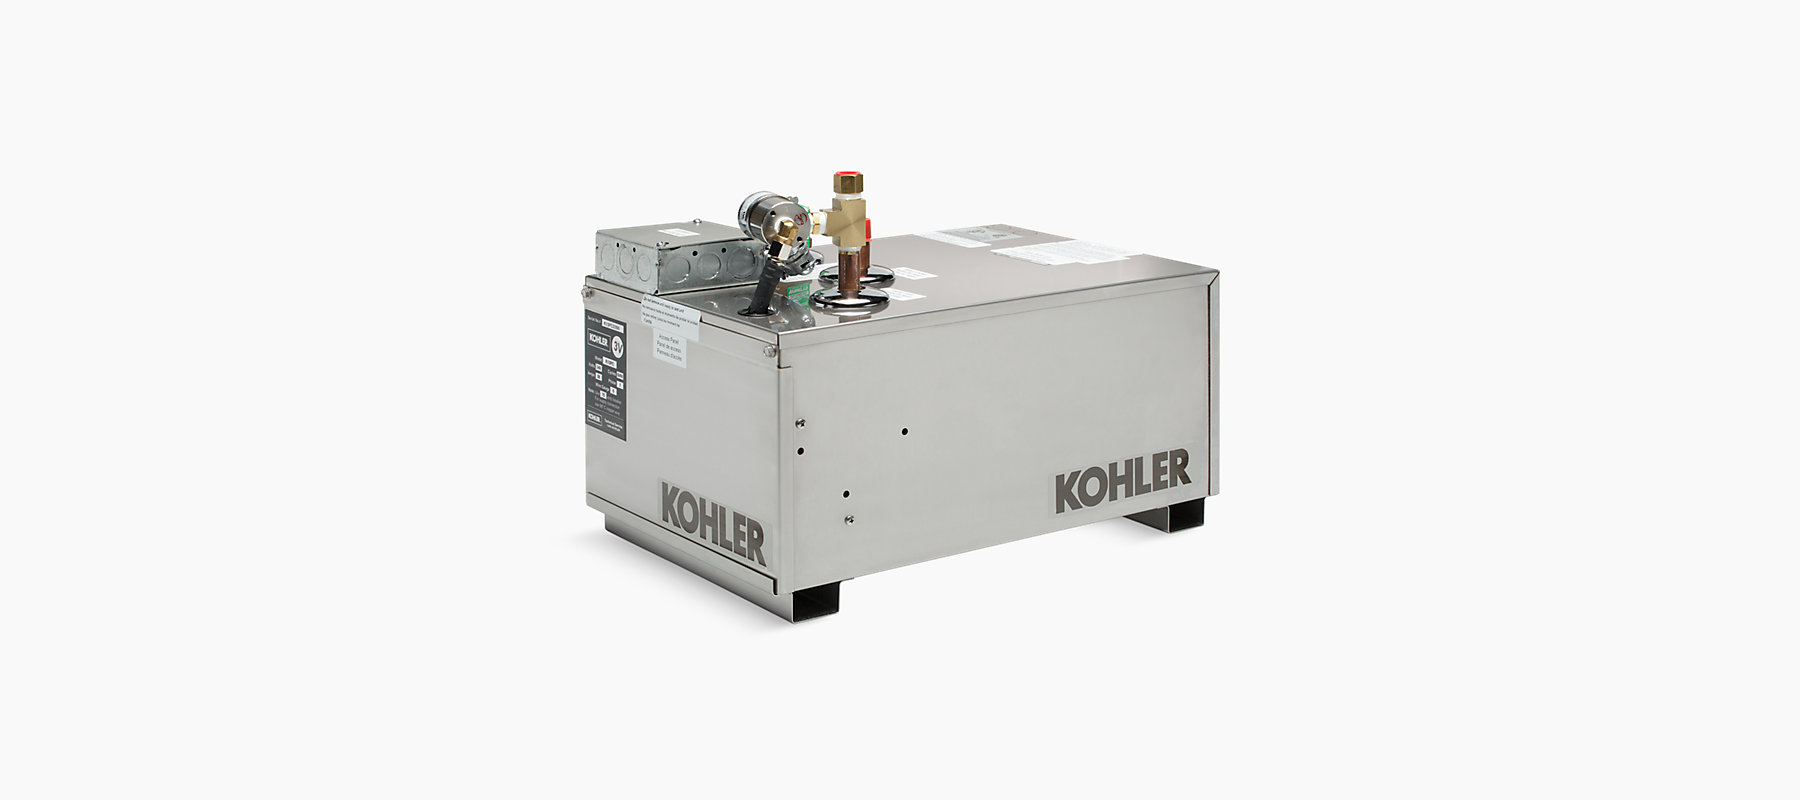 kohler generator wiring diagram wiring diagram which 20kw whole house generator would you remend and why page 4 kohler generator wiring diagram schematics and diagrams source